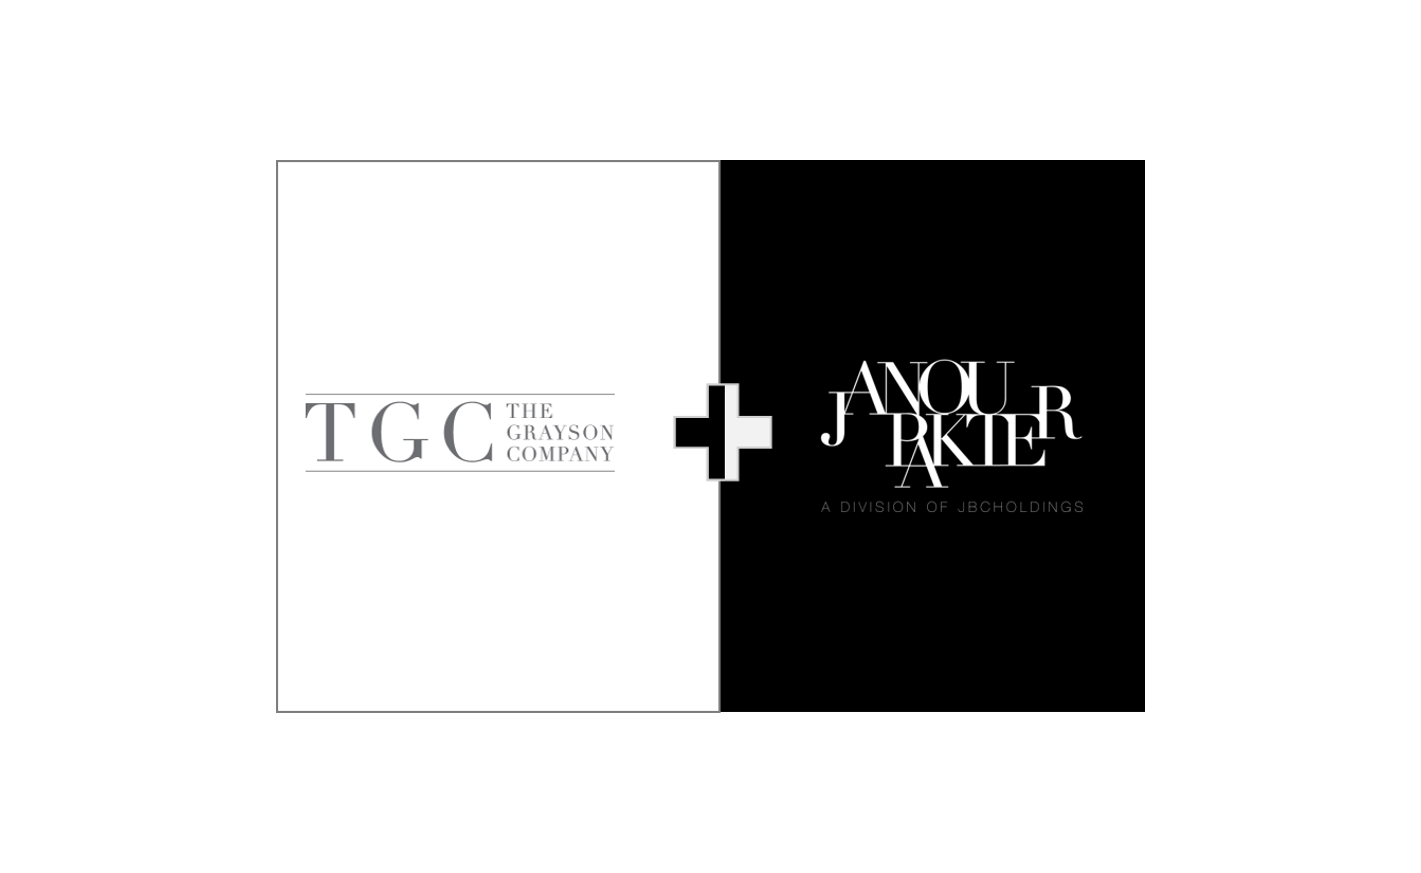 TGC + Janou Pakter: A partnership that will transform organizations and innovate industries